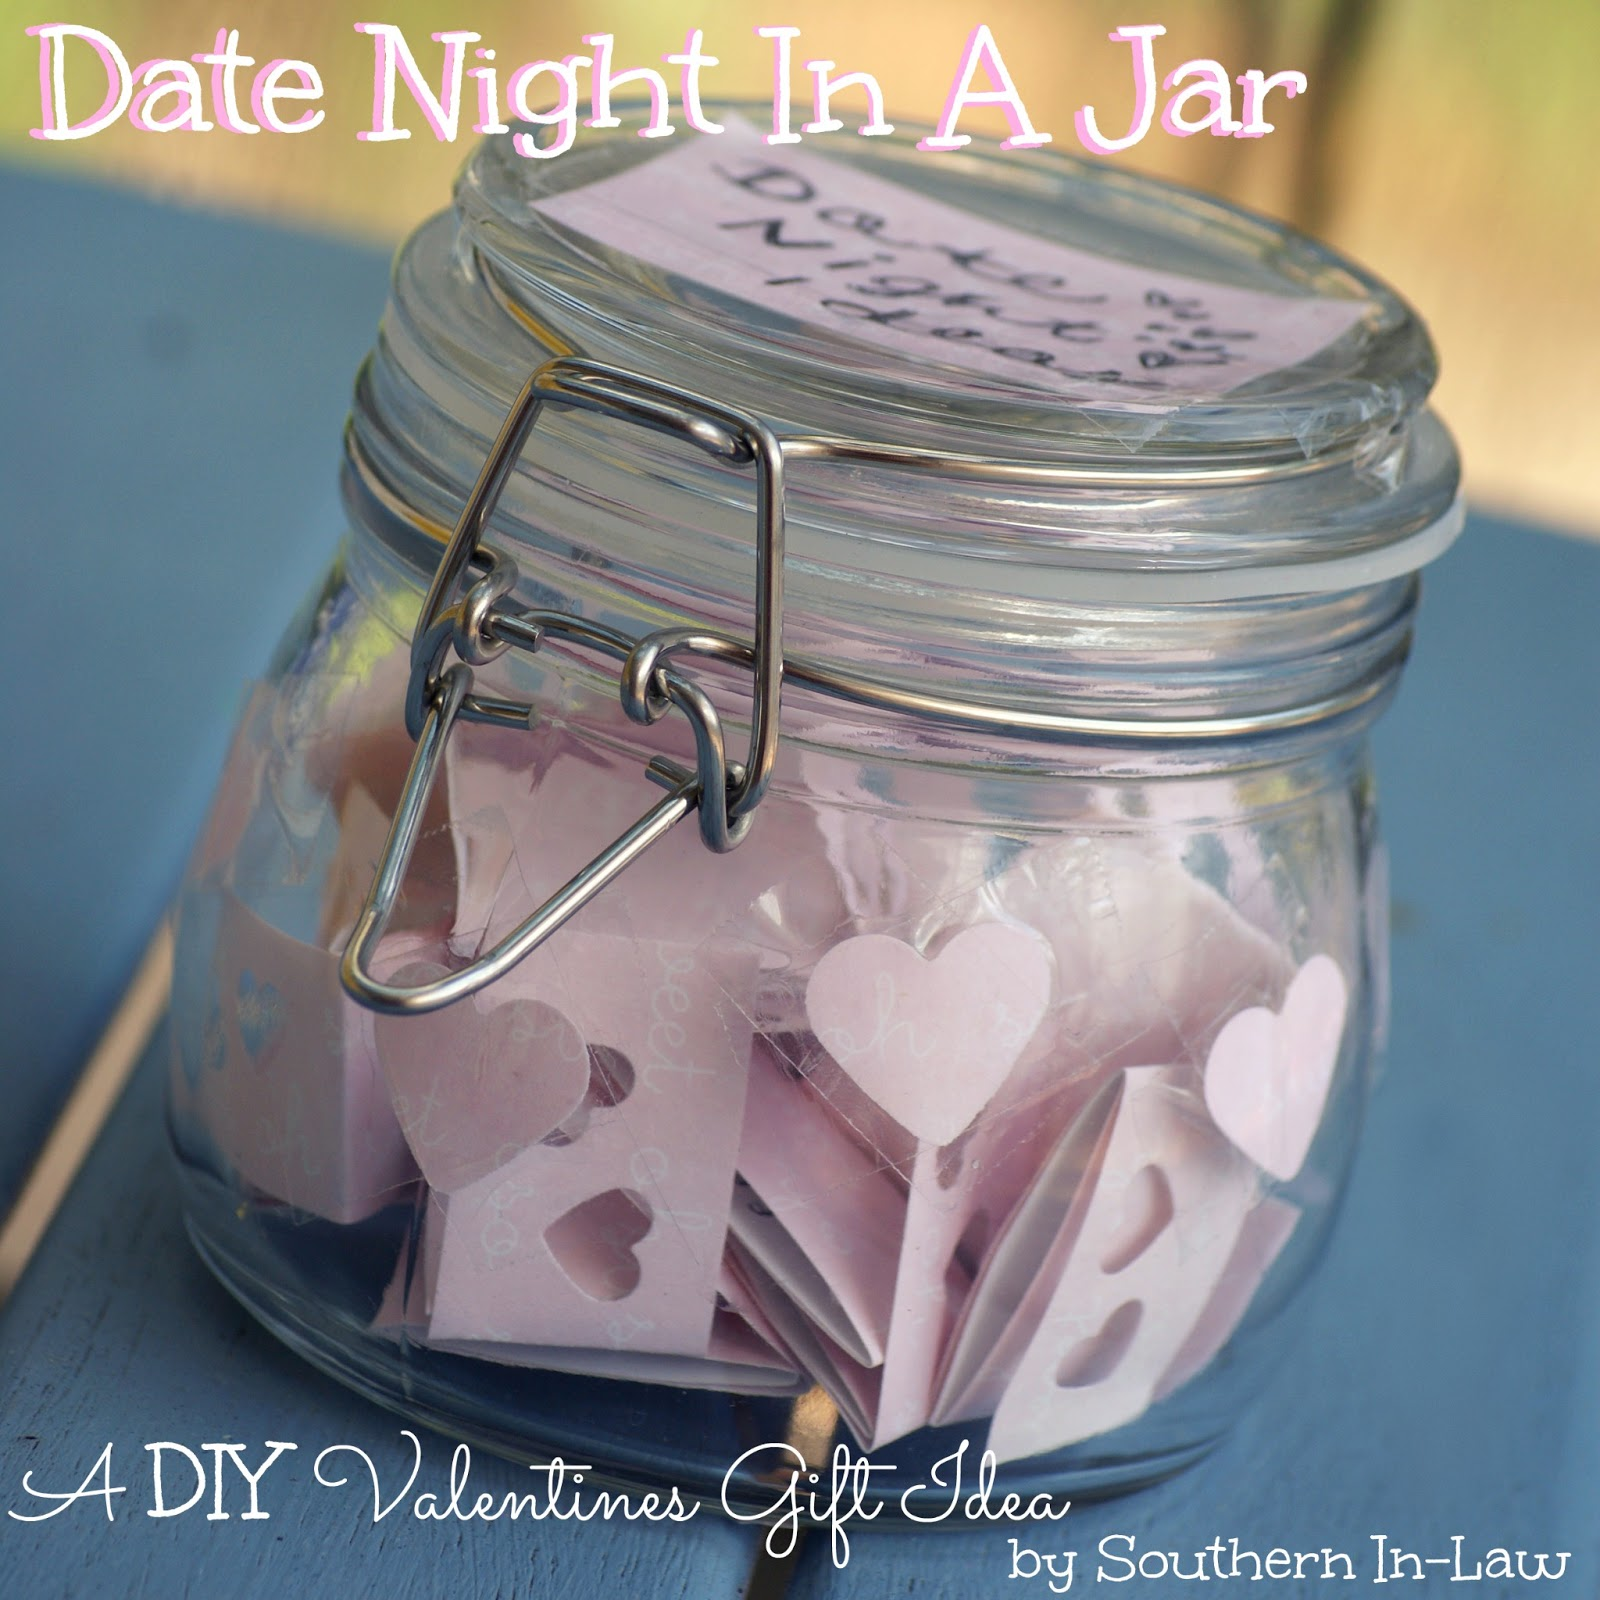 Southern in law valentines diy gifts date night jar diy valentines gift date night in a jar solutioingenieria Image collections